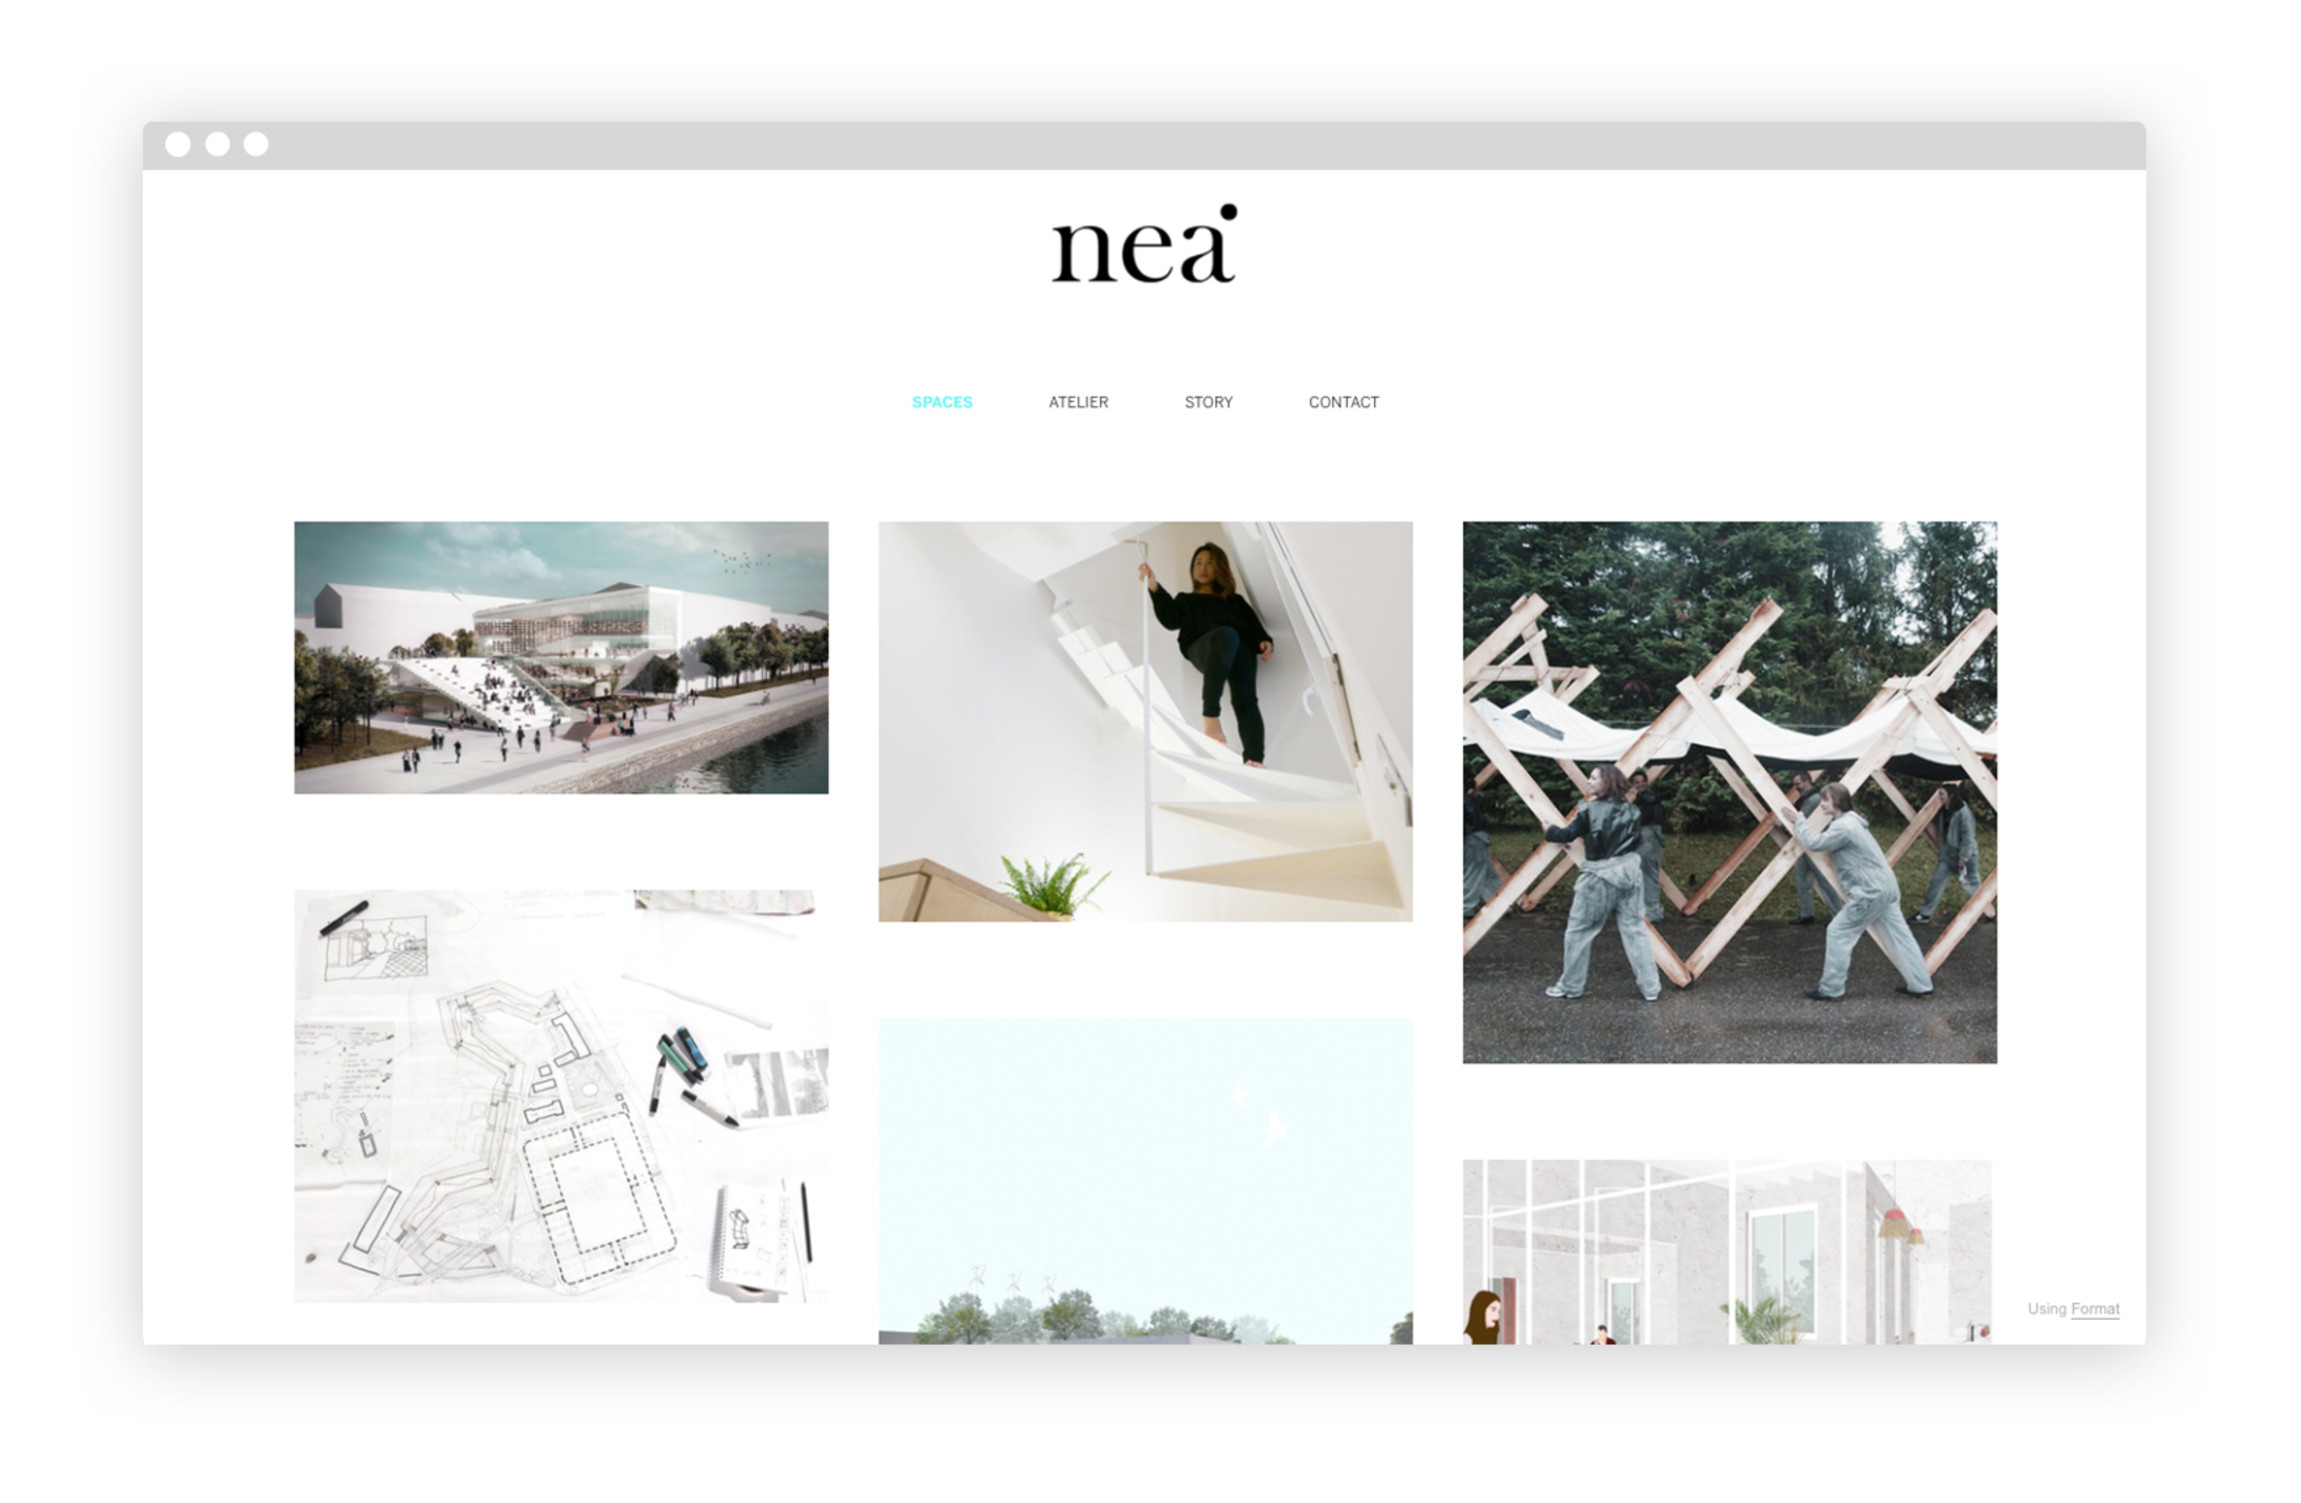 10 Architecture Portfolios For Design Inspiration